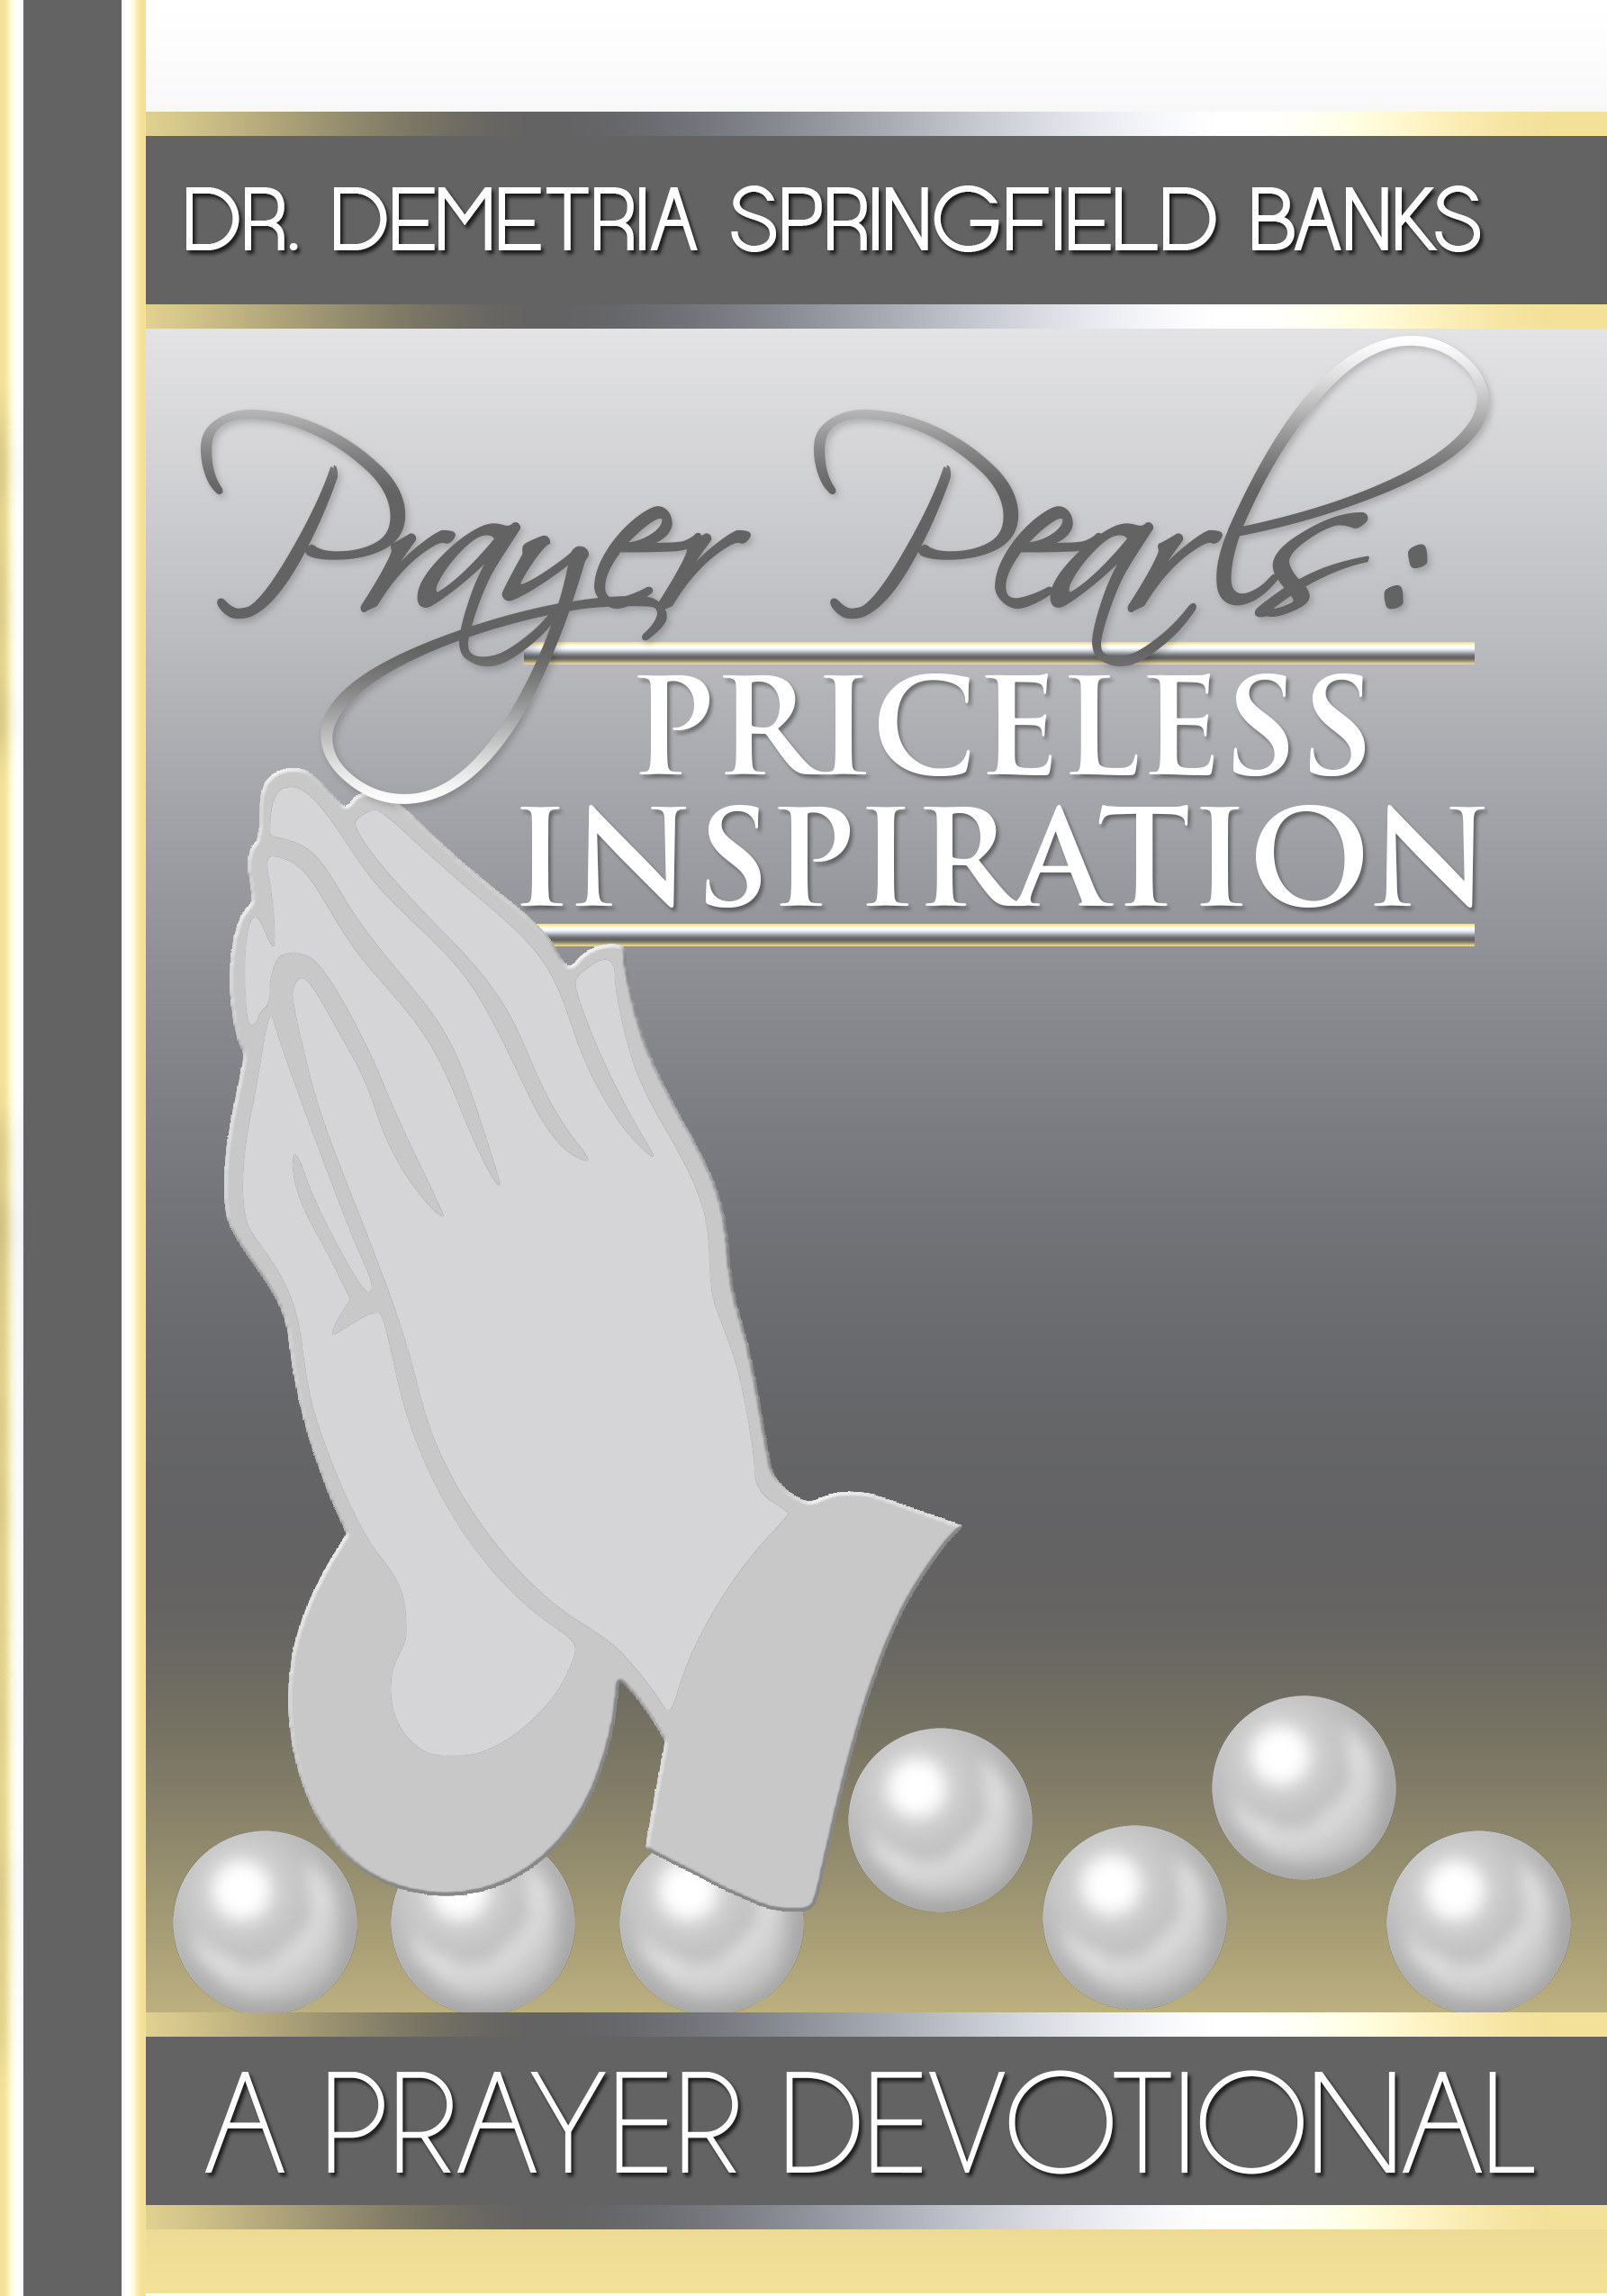 Prayer Pearls: Priceless Inspiration